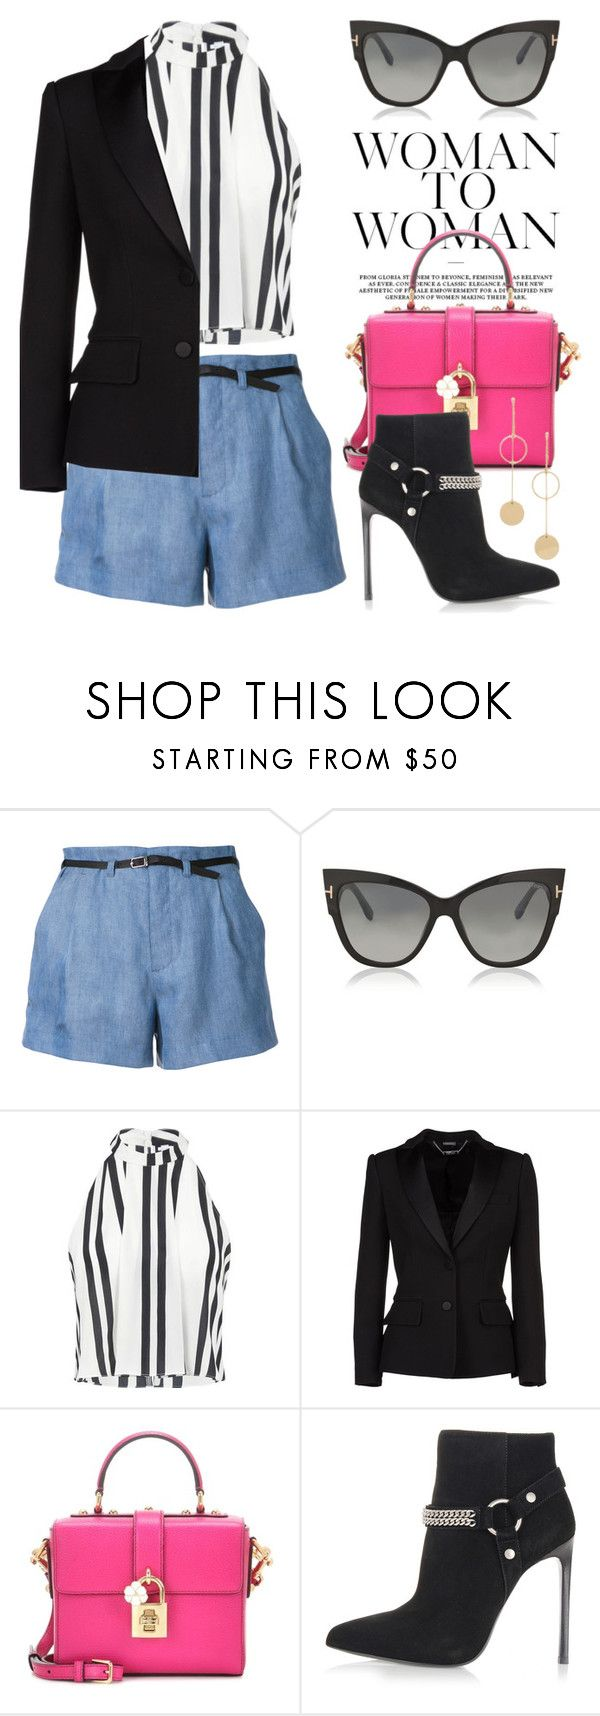 """""""Upscale Shorts 3619"""" by boxthoughts ❤ liked on Polyvore featuring Guild Prime, Tom Ford, Alexander McQueen, Dolce&Gabbana, Yves Saint Laurent and Cloverpost"""